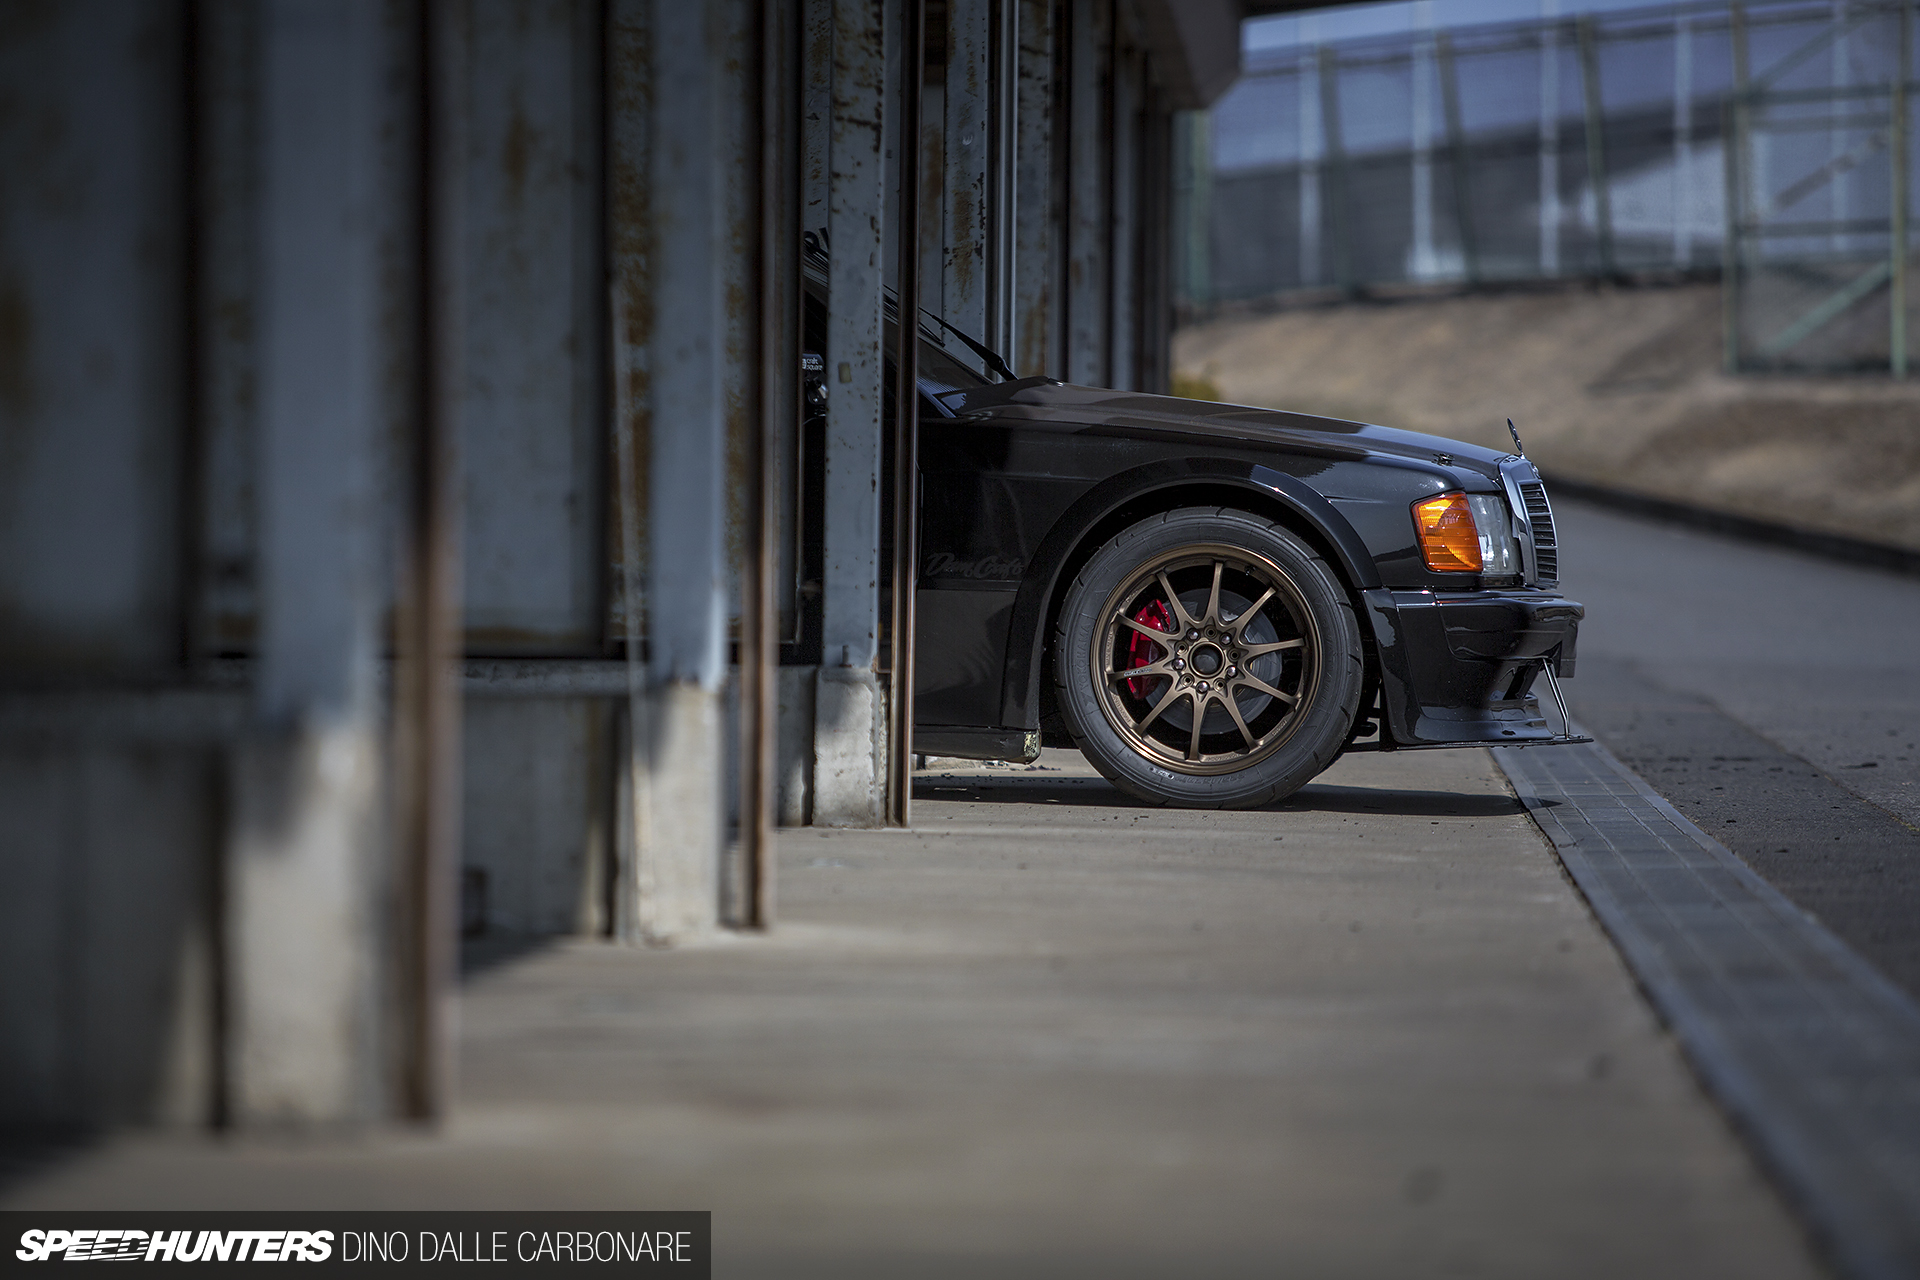 Sleeper Car Wallpaper Dtm Aspirations The Clever 190e 2 3 16 Speedhunters